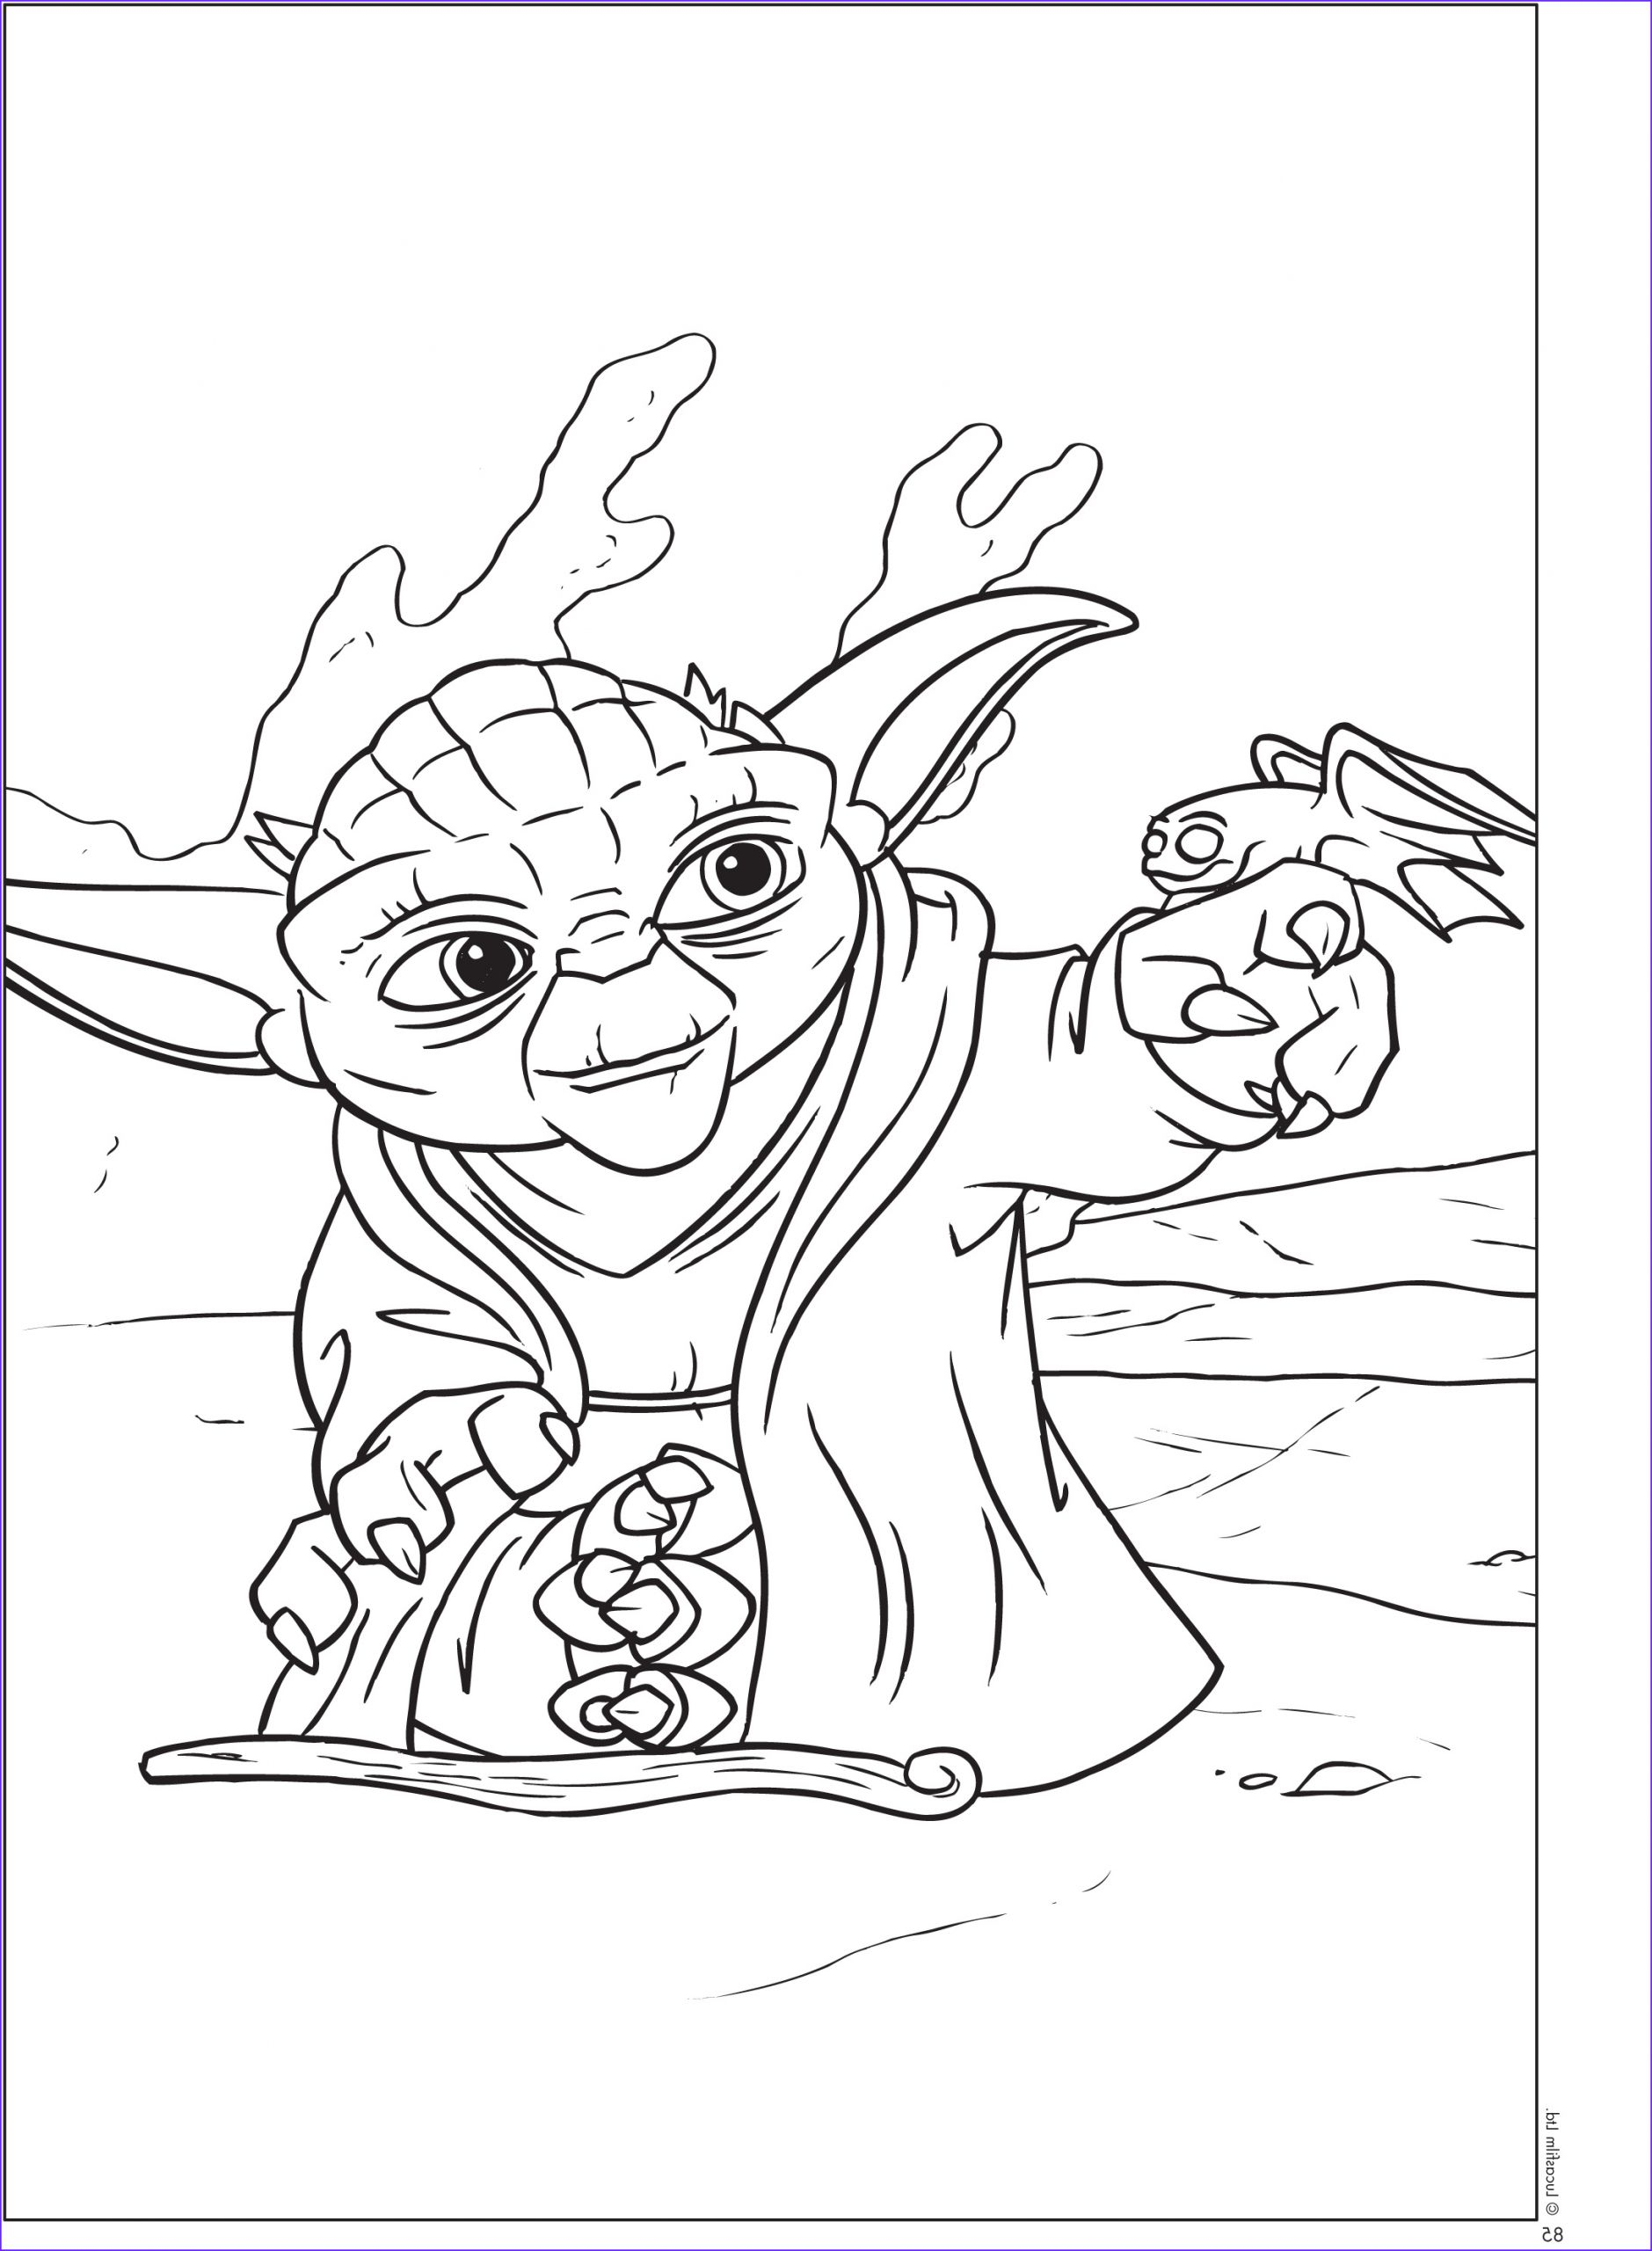 Star Wars Coloring Pages Beautiful Image Free Printable Star Wars Coloring Sheets Queen Of Free